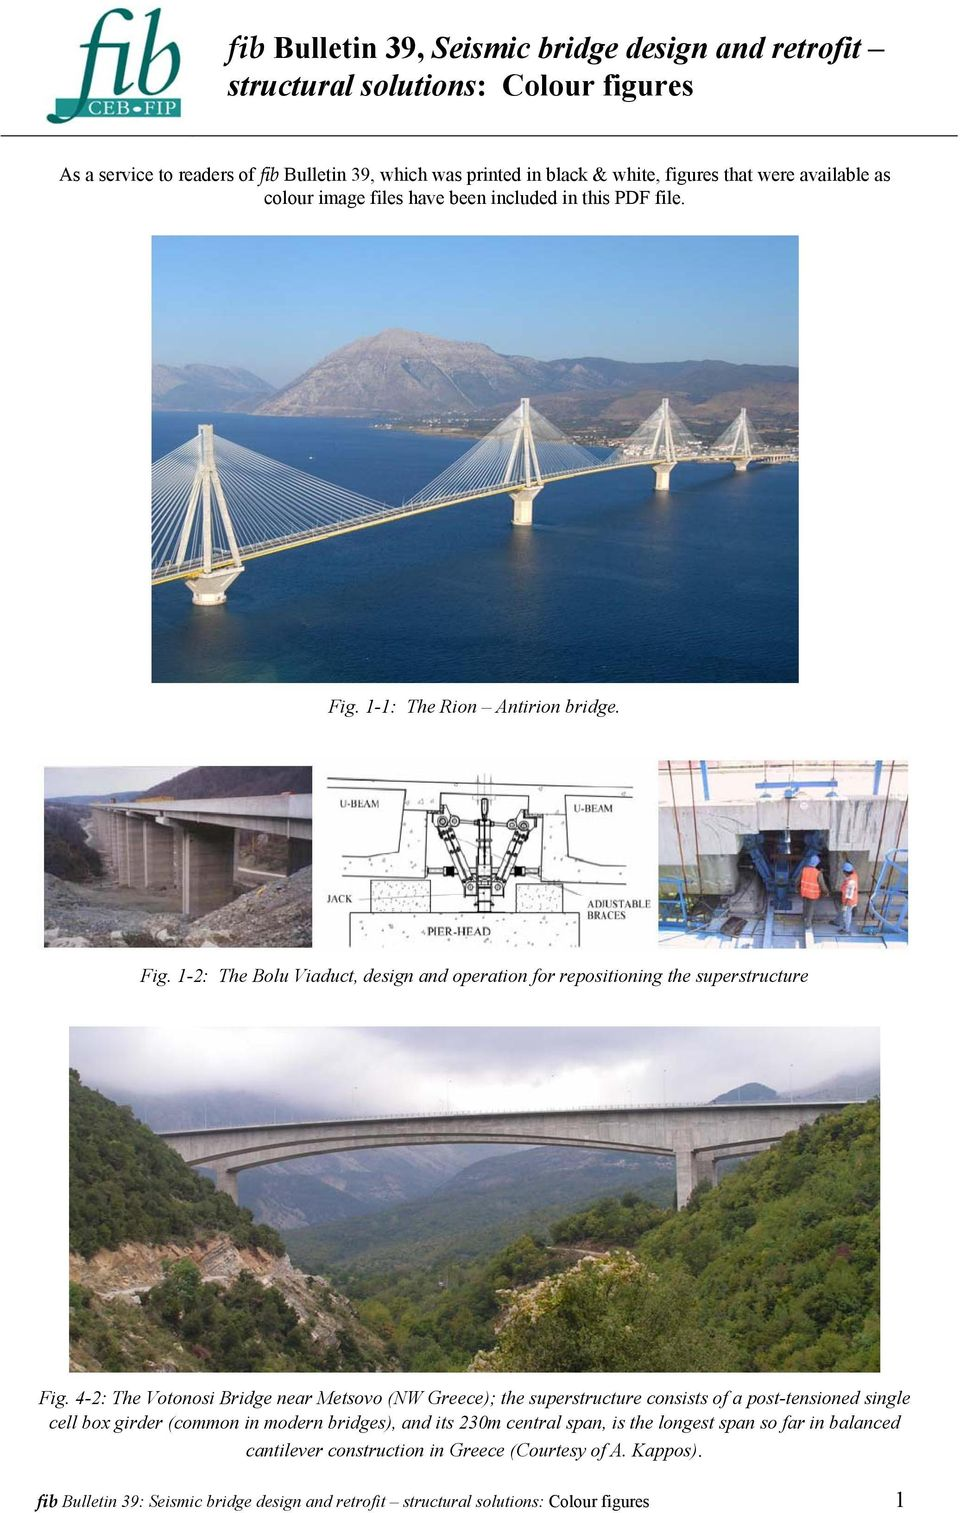 4-2: The Votonosi Bridge near Metsovo (NW Greece); the superstructure consists of a post-tensioned single cell box girder (common in modern bridges), and its 230m central span, is the